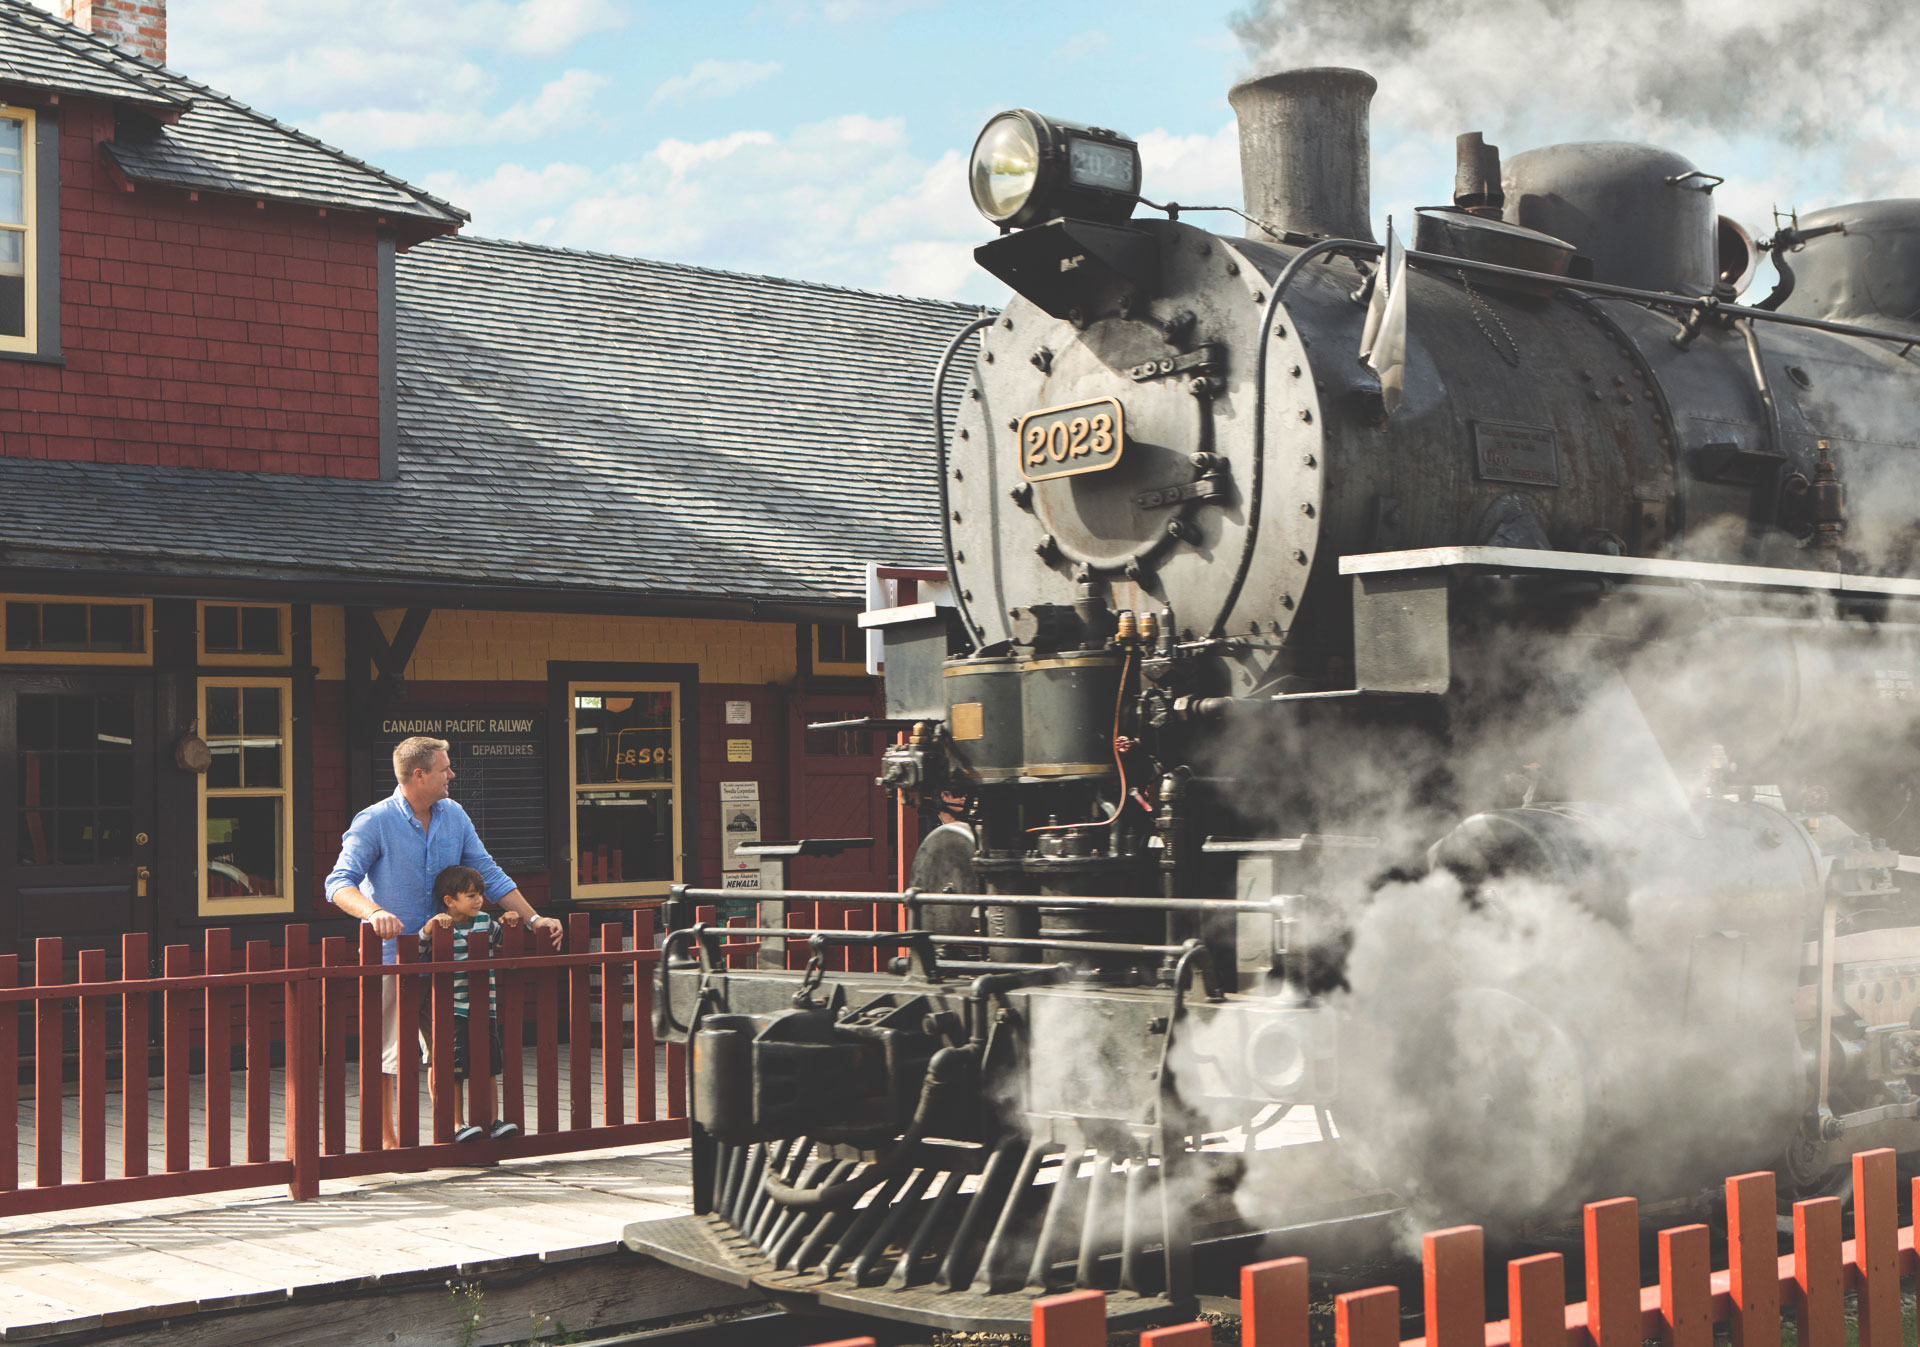 Heritage Park Steam Train